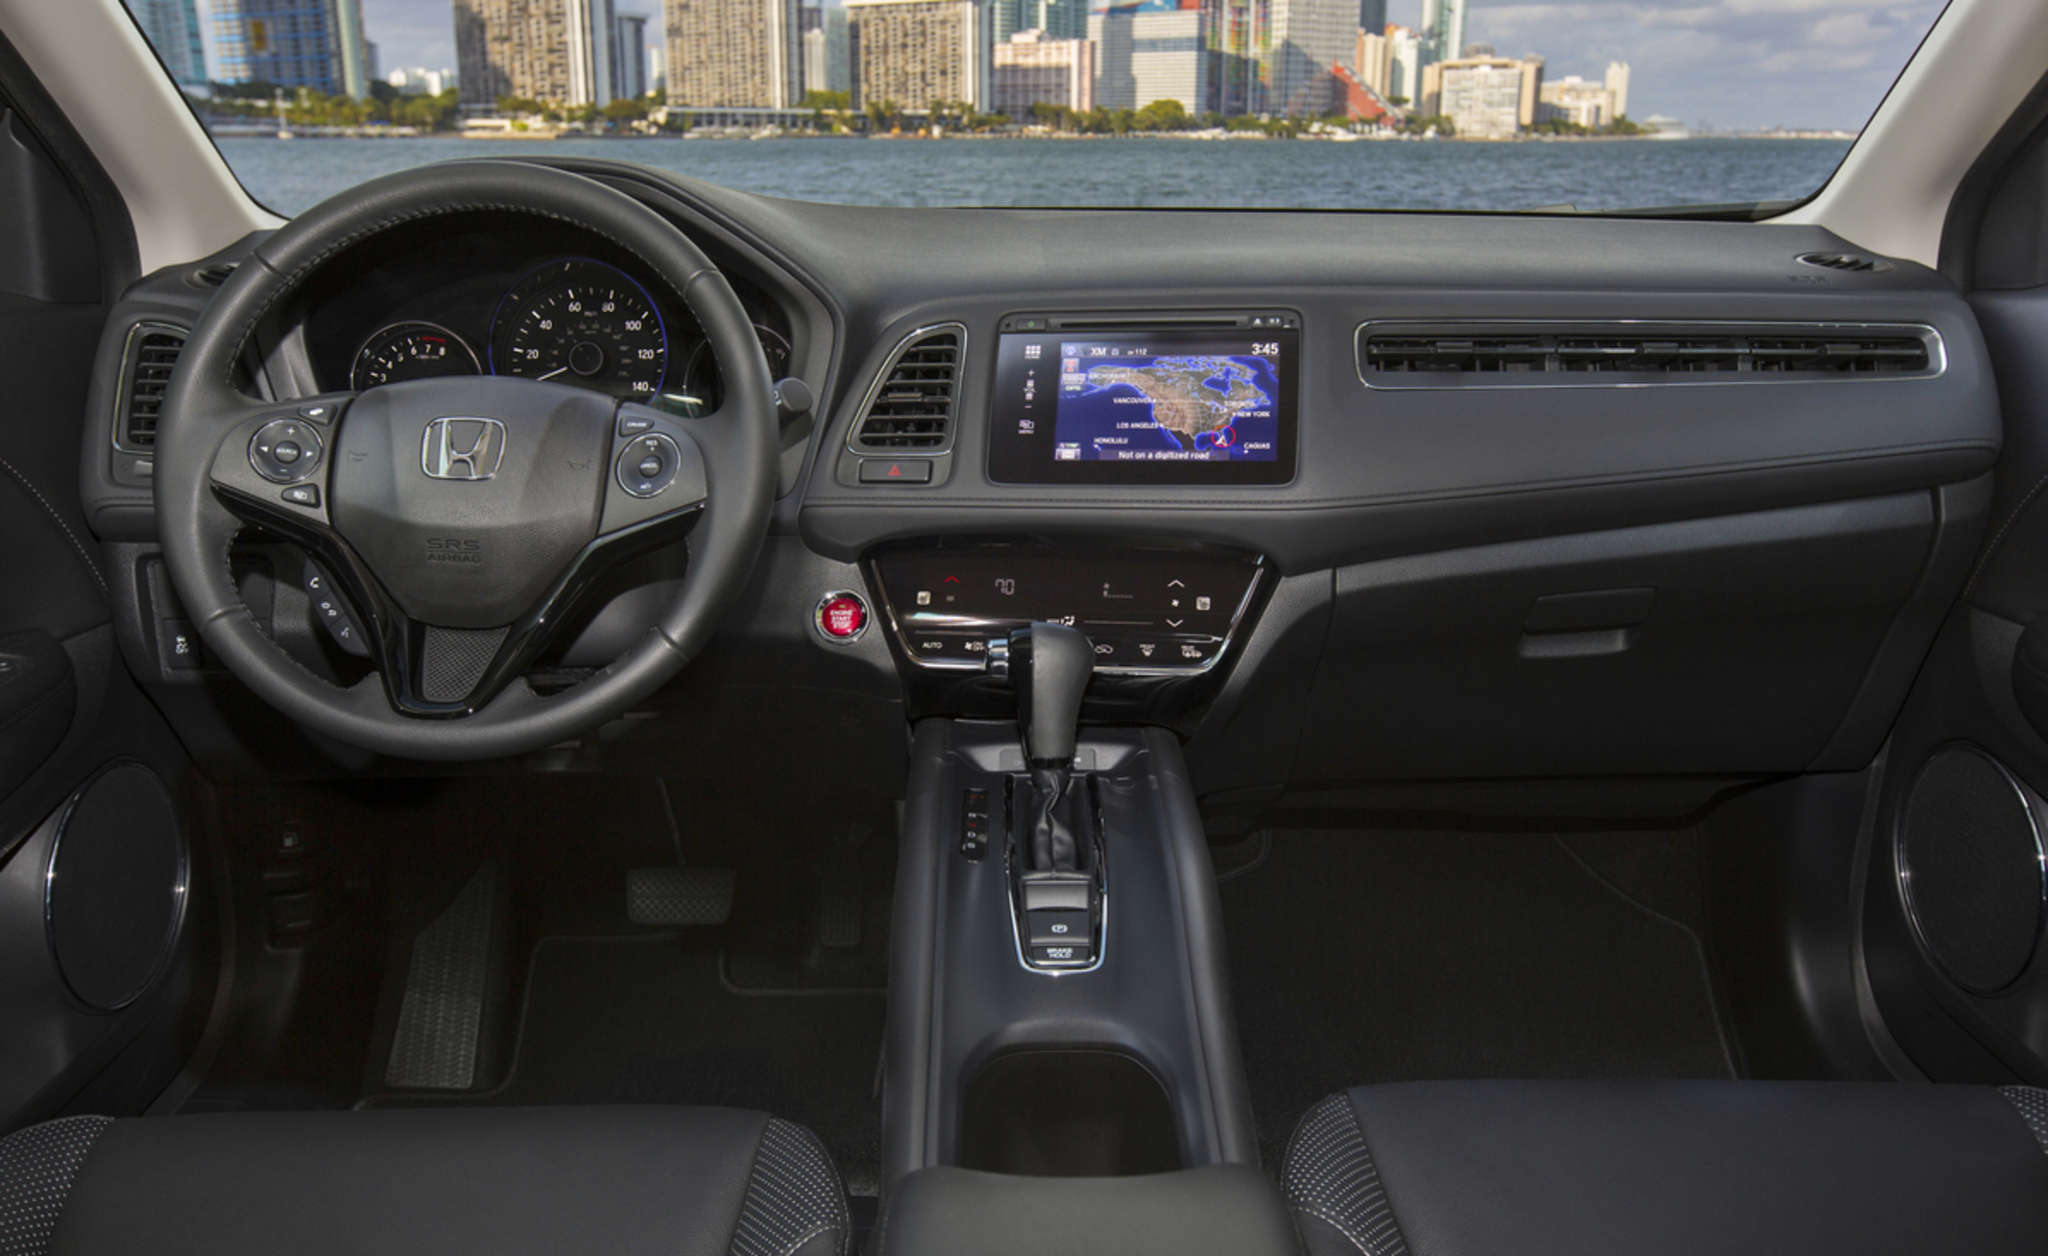 The infotainment system offers clear and helpful graphics. A right-turn camera gives a clear view of what´s going on in the next lane. But the seats were uncomfortable.